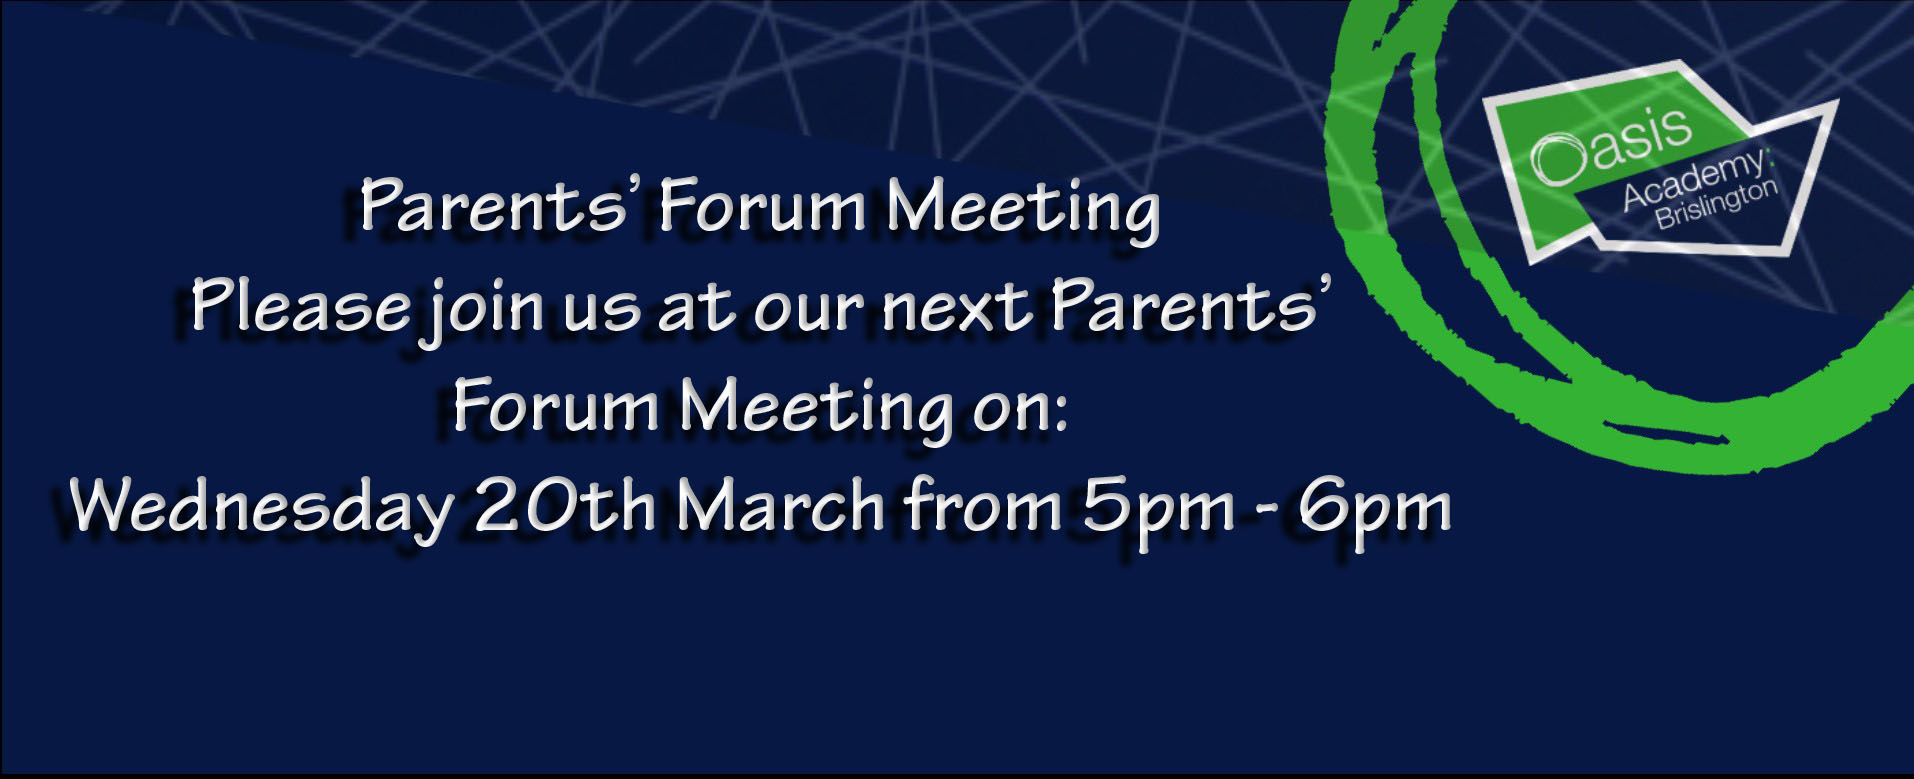 PARENTS' FORUM MEETING